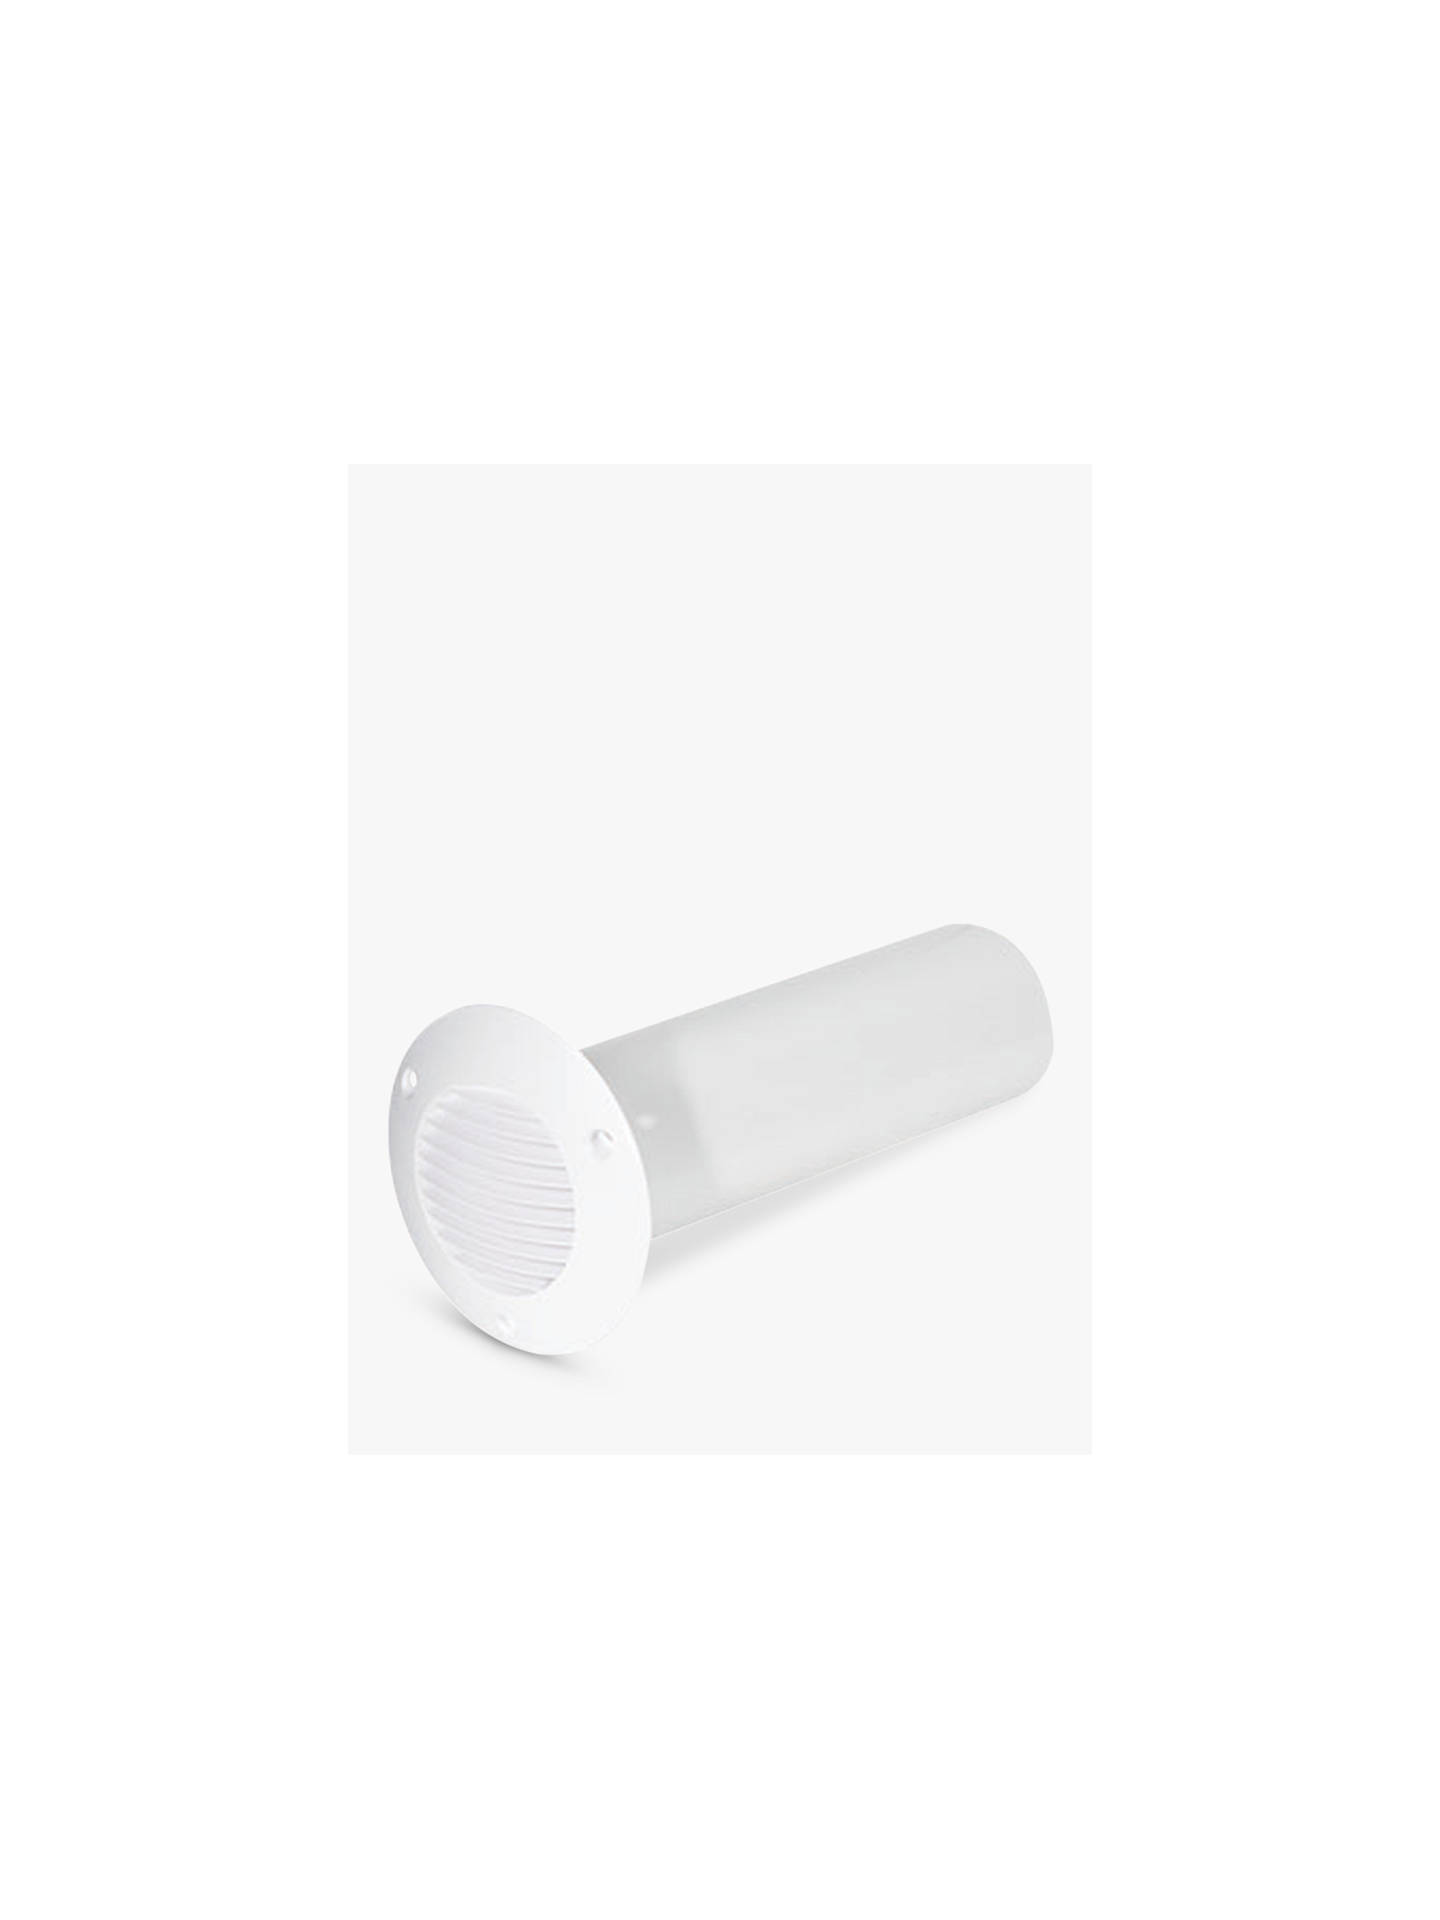 BuyJohn Lewis & Partners Venting Cavity Wall Kit, White Online at johnlewis.com